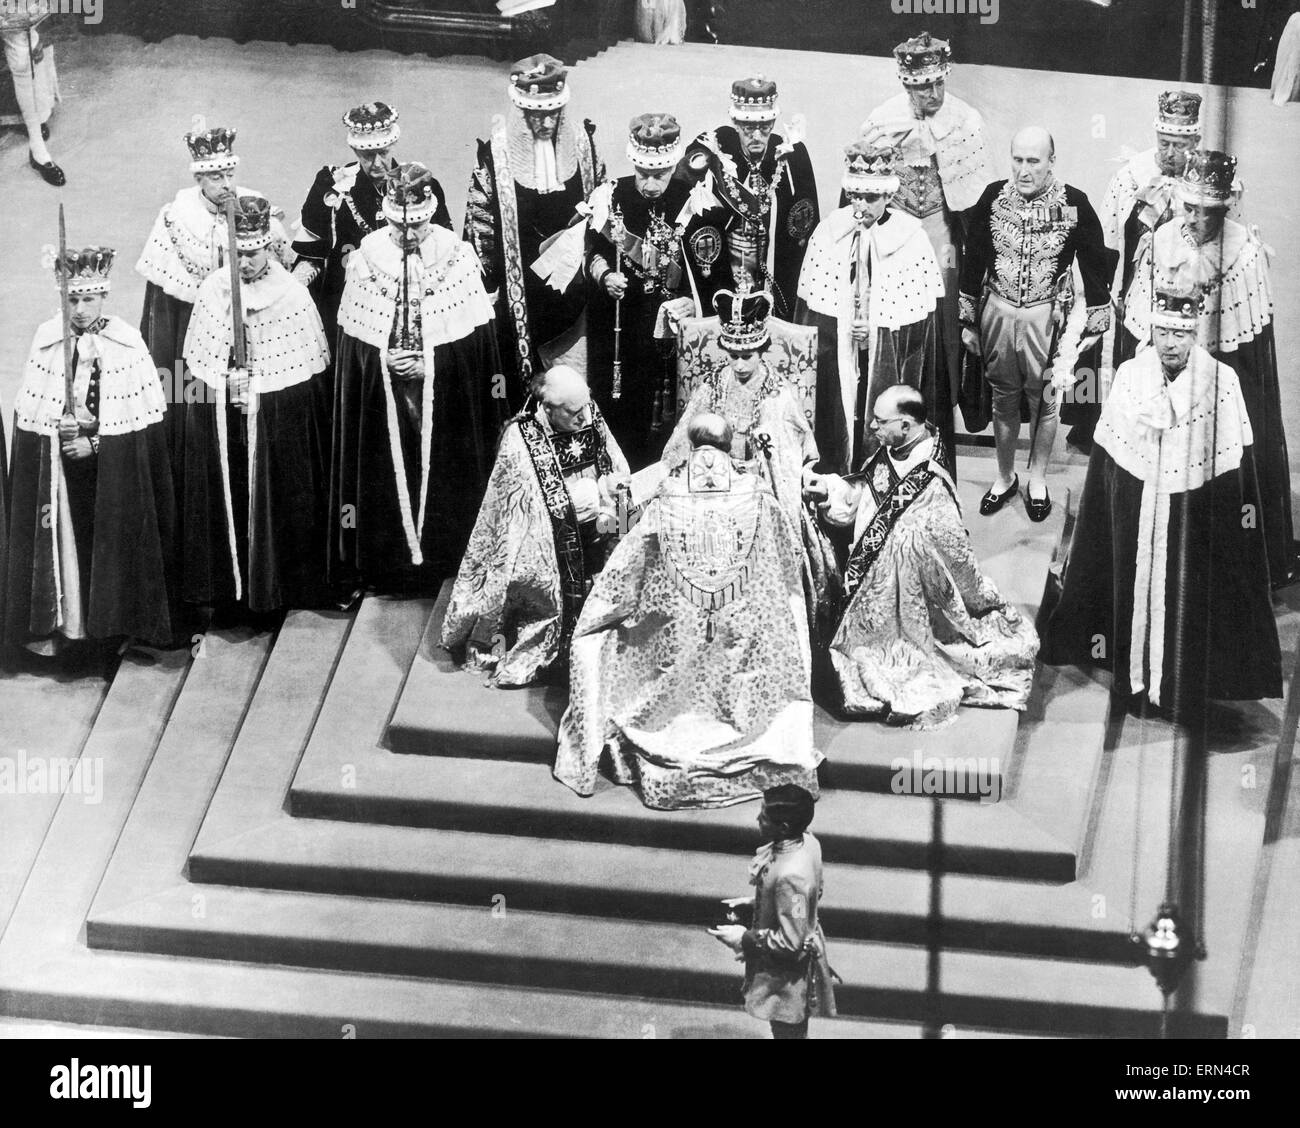 The Coronation of Queen Elizabeth II was the ceremony in which the newly ascended monarch, Elizabeth II, was crowned Stock Photo